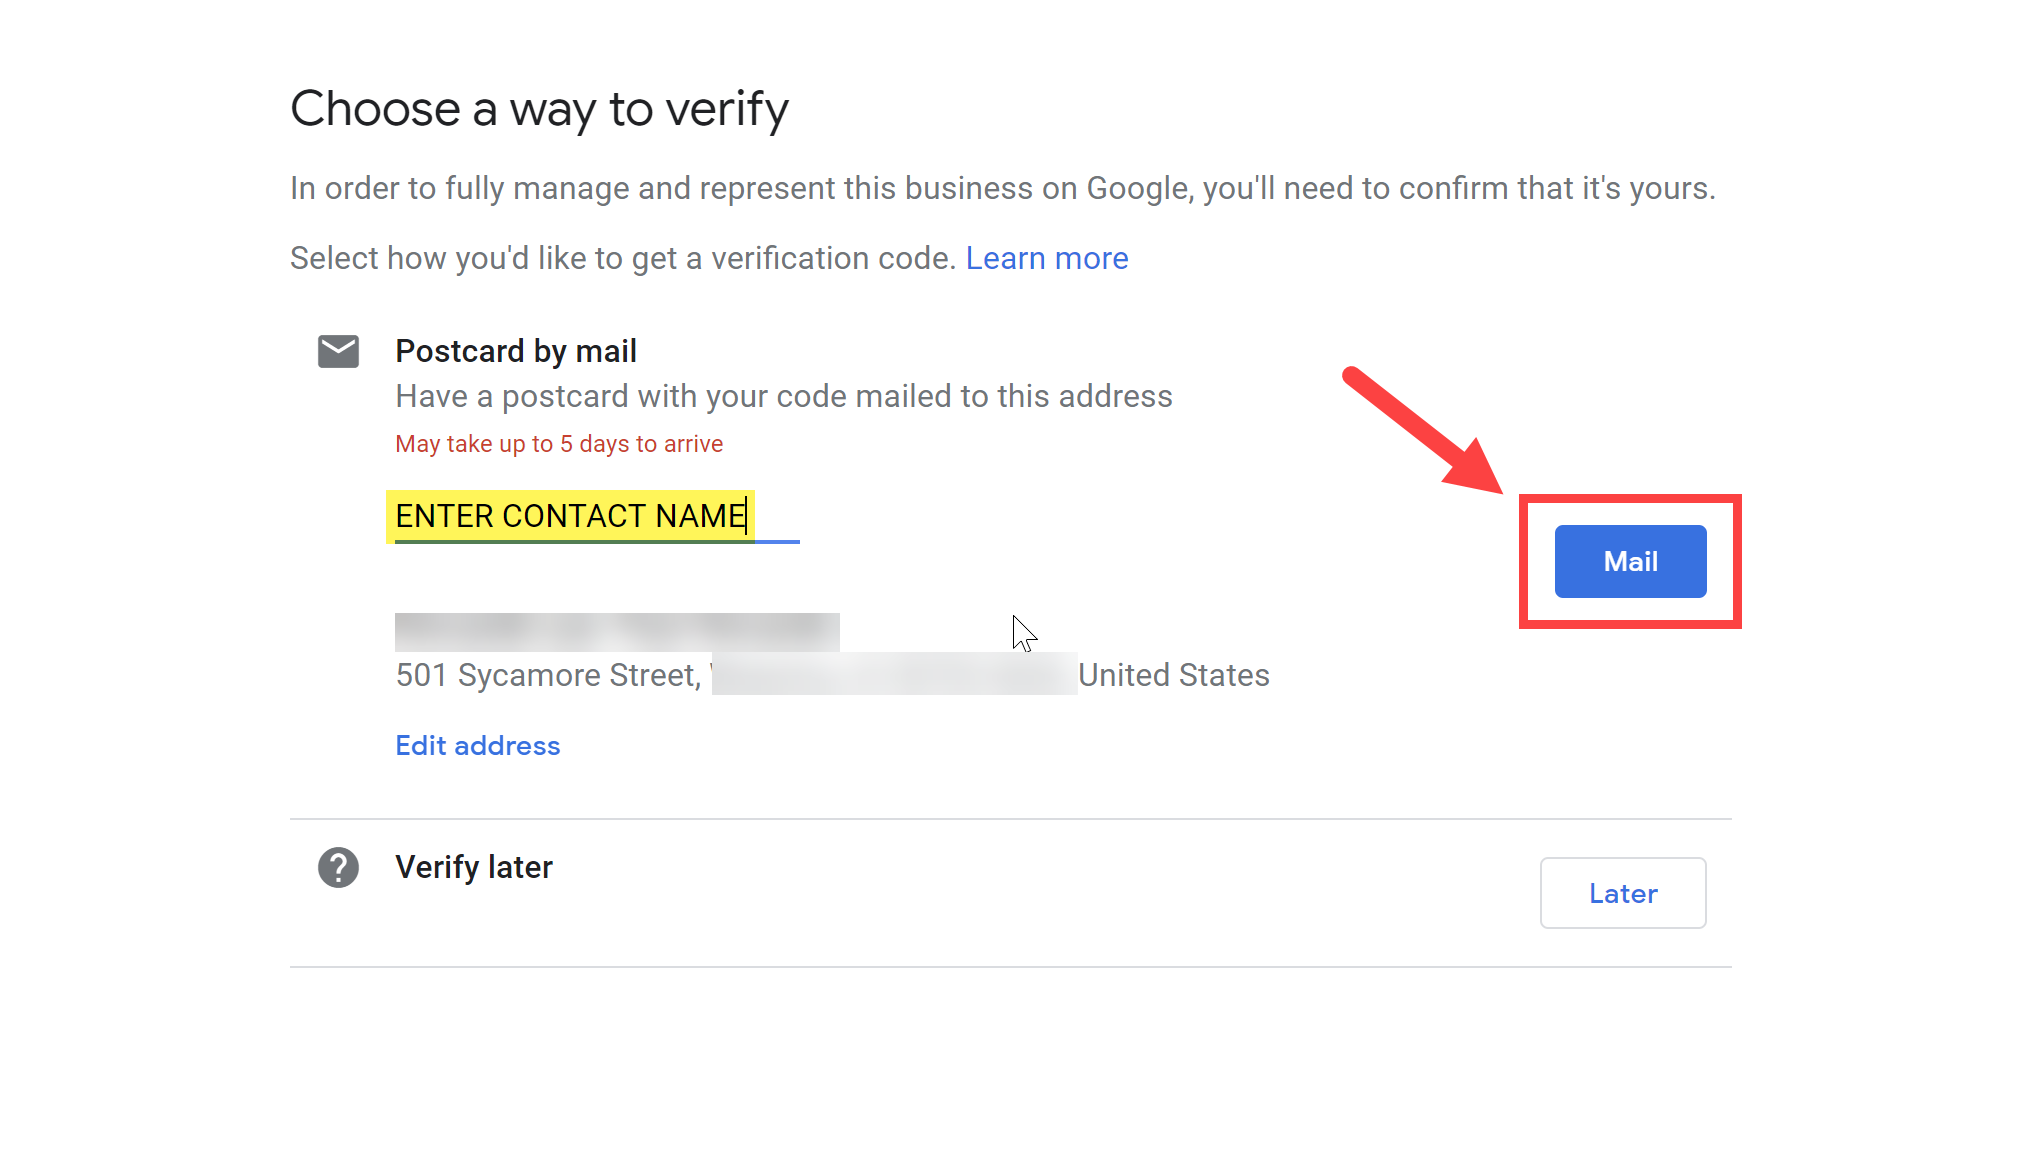 Choose Mail as a way to verify.